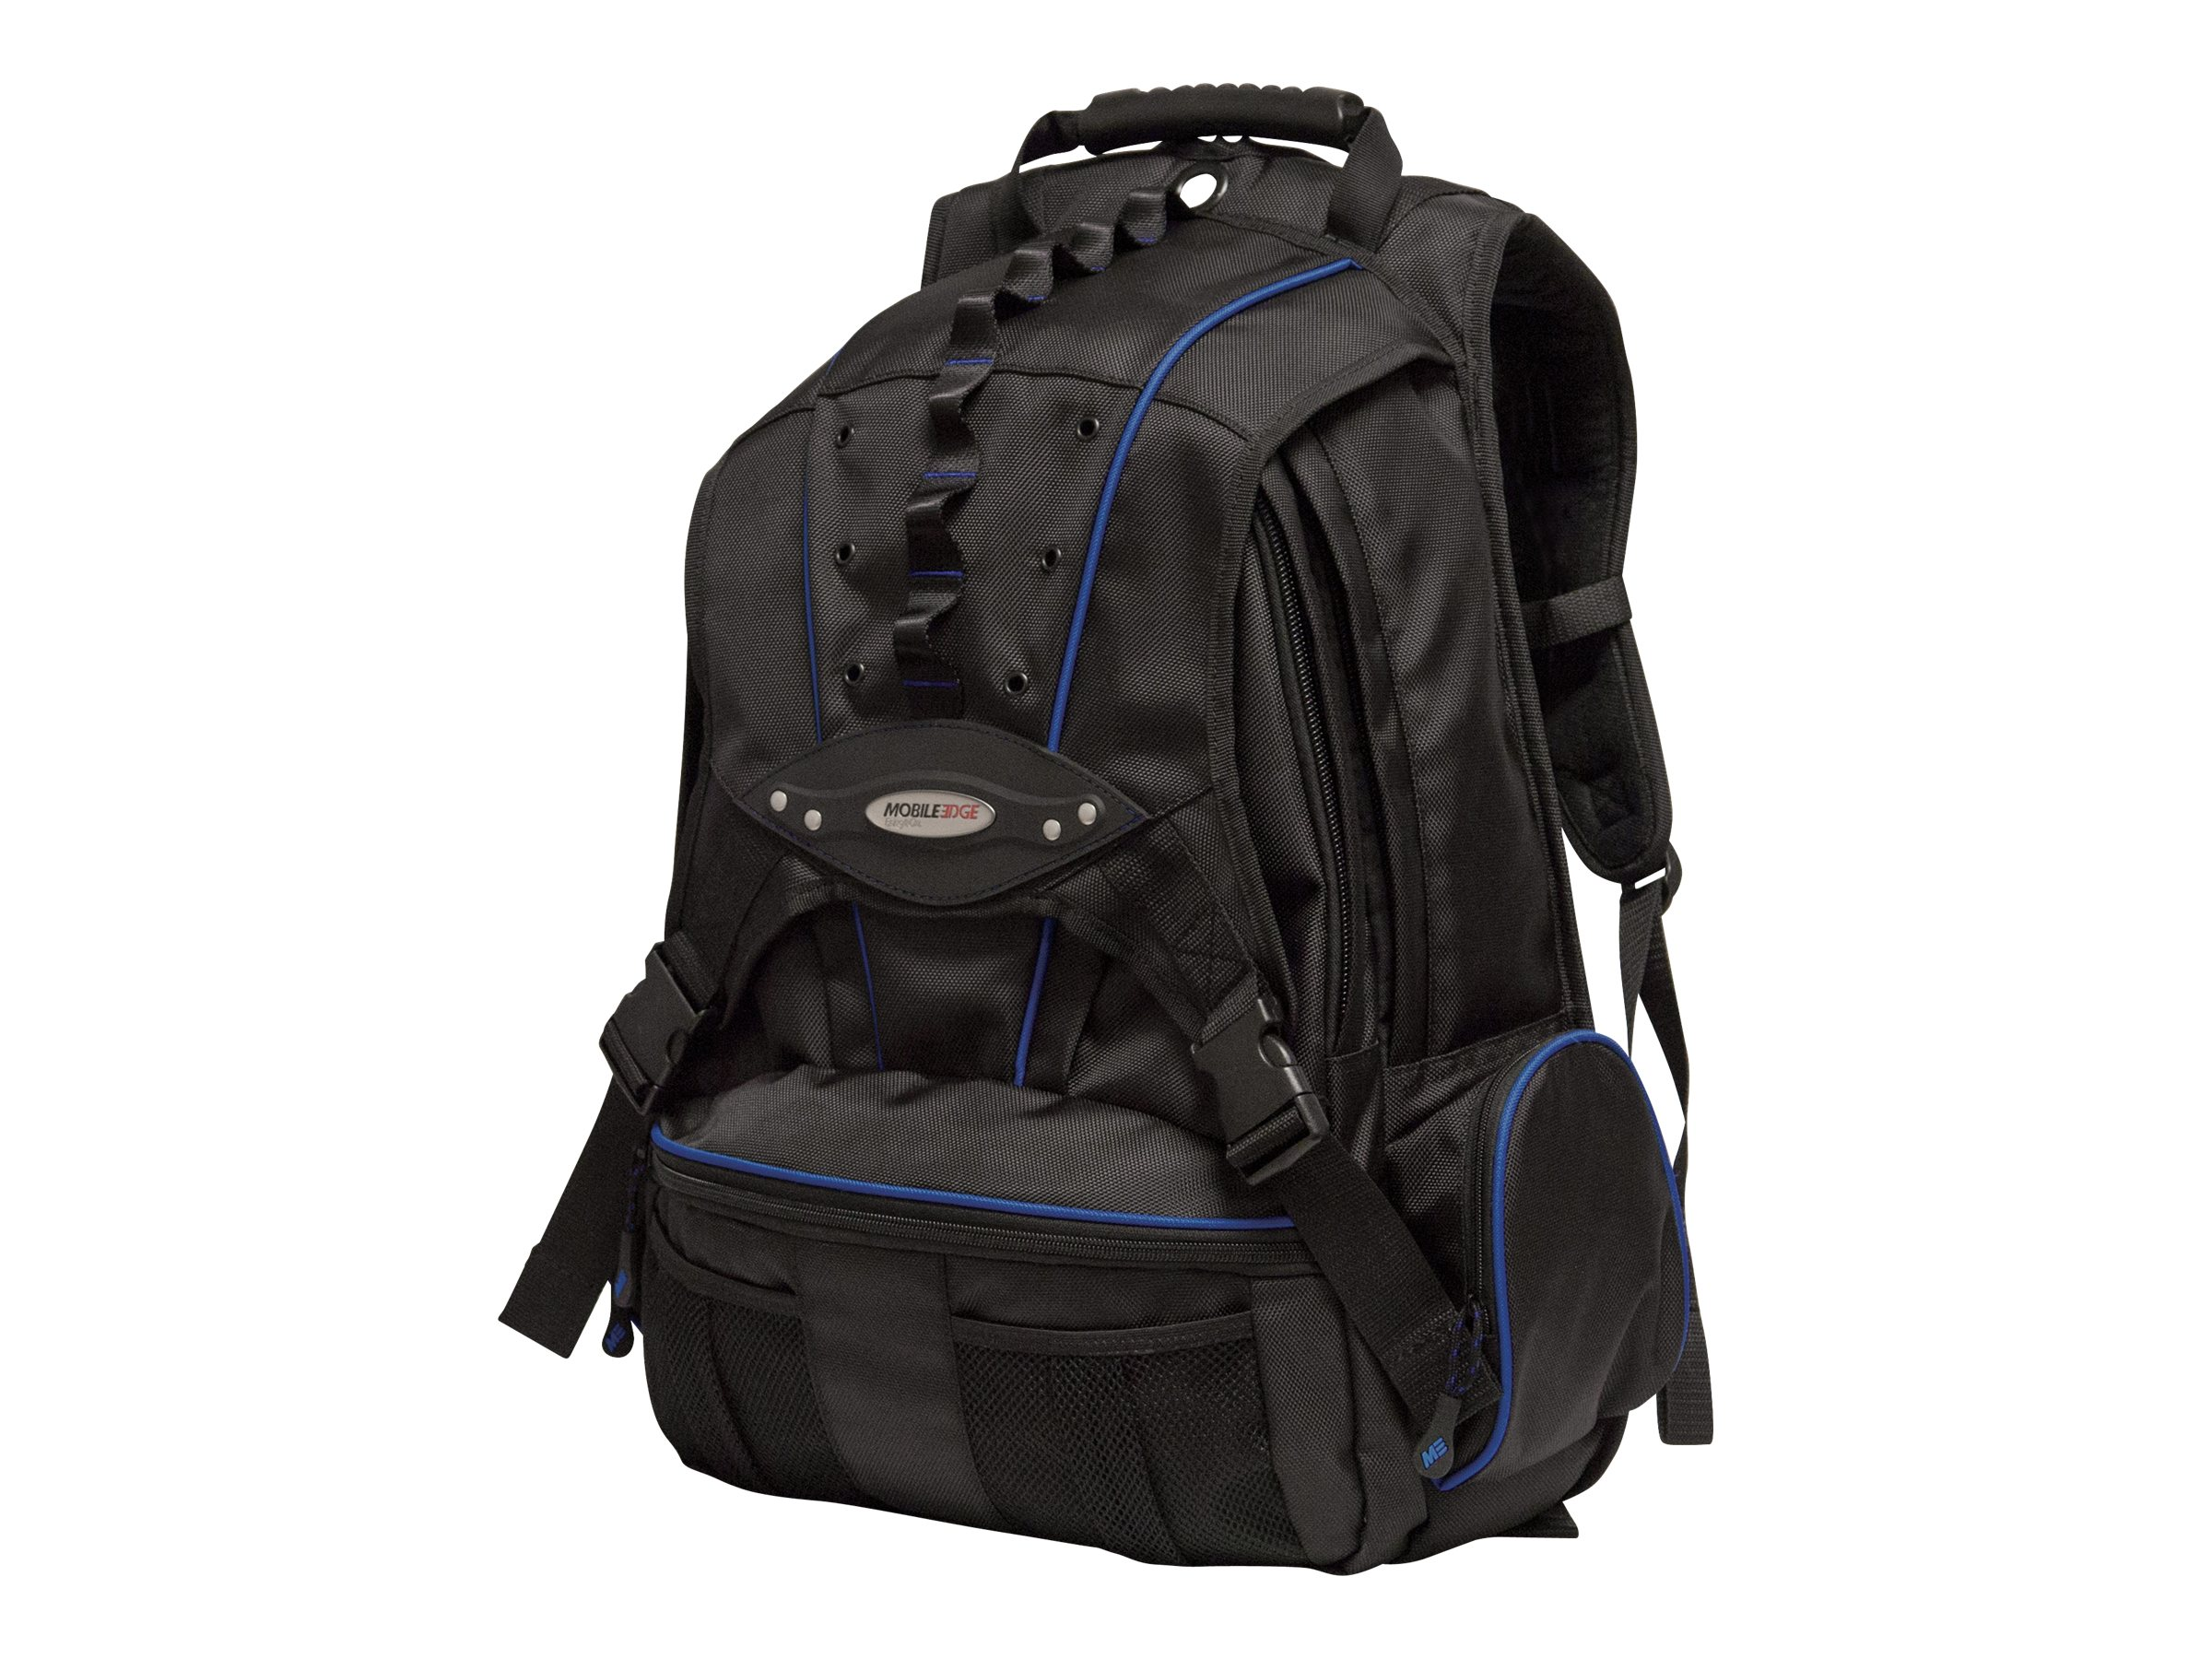 Mobile Edge Premium Backpack 17.3, Blue Trim, MEBPP3, 17562309, Carrying Cases - Notebook